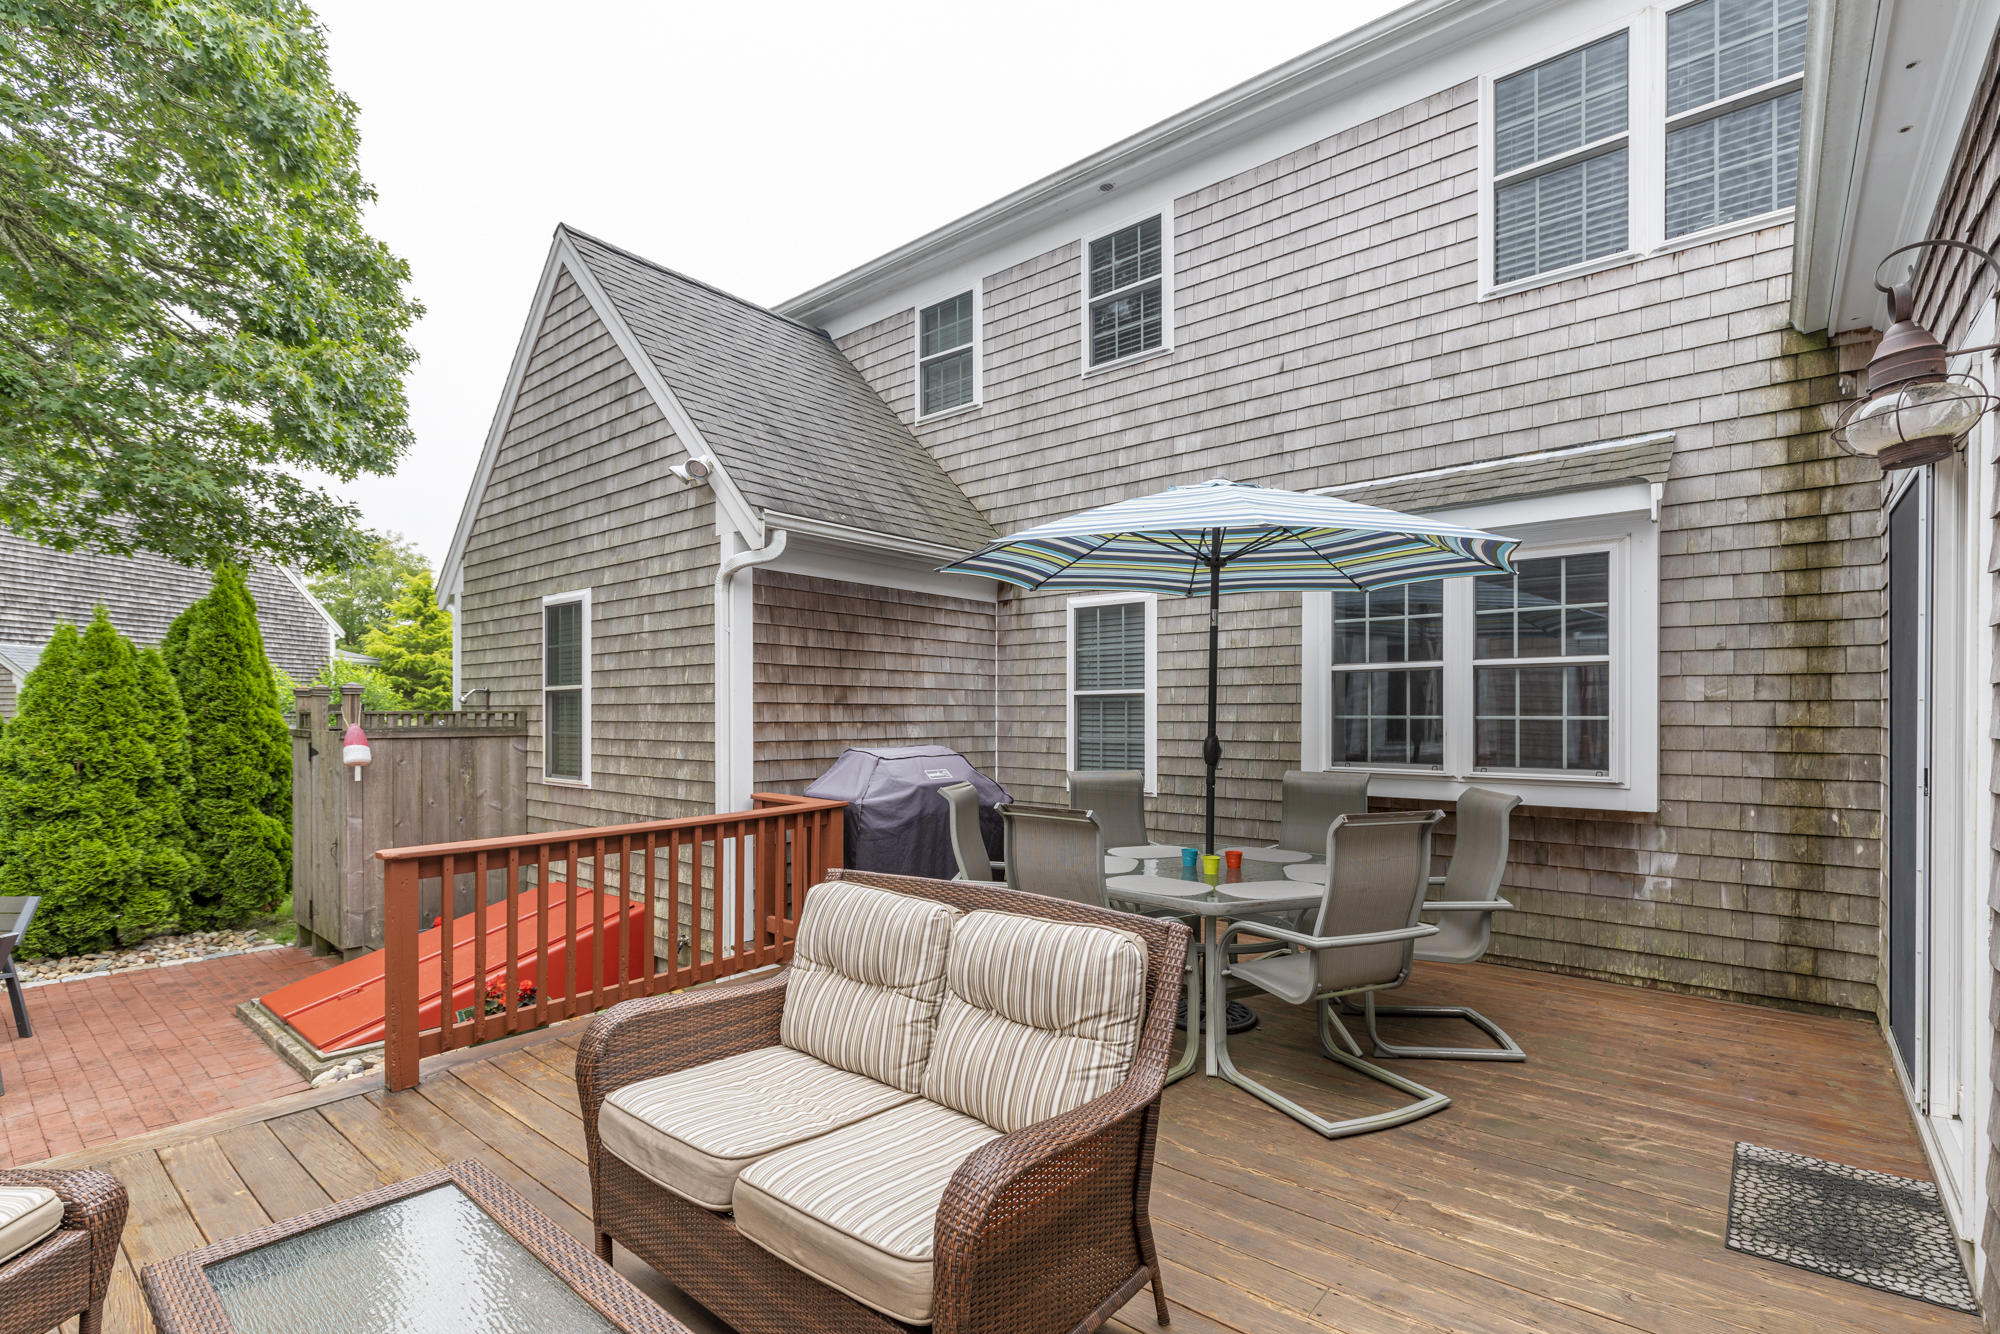 3 Nellies Way, Chatham, MA  02633 - slide 34